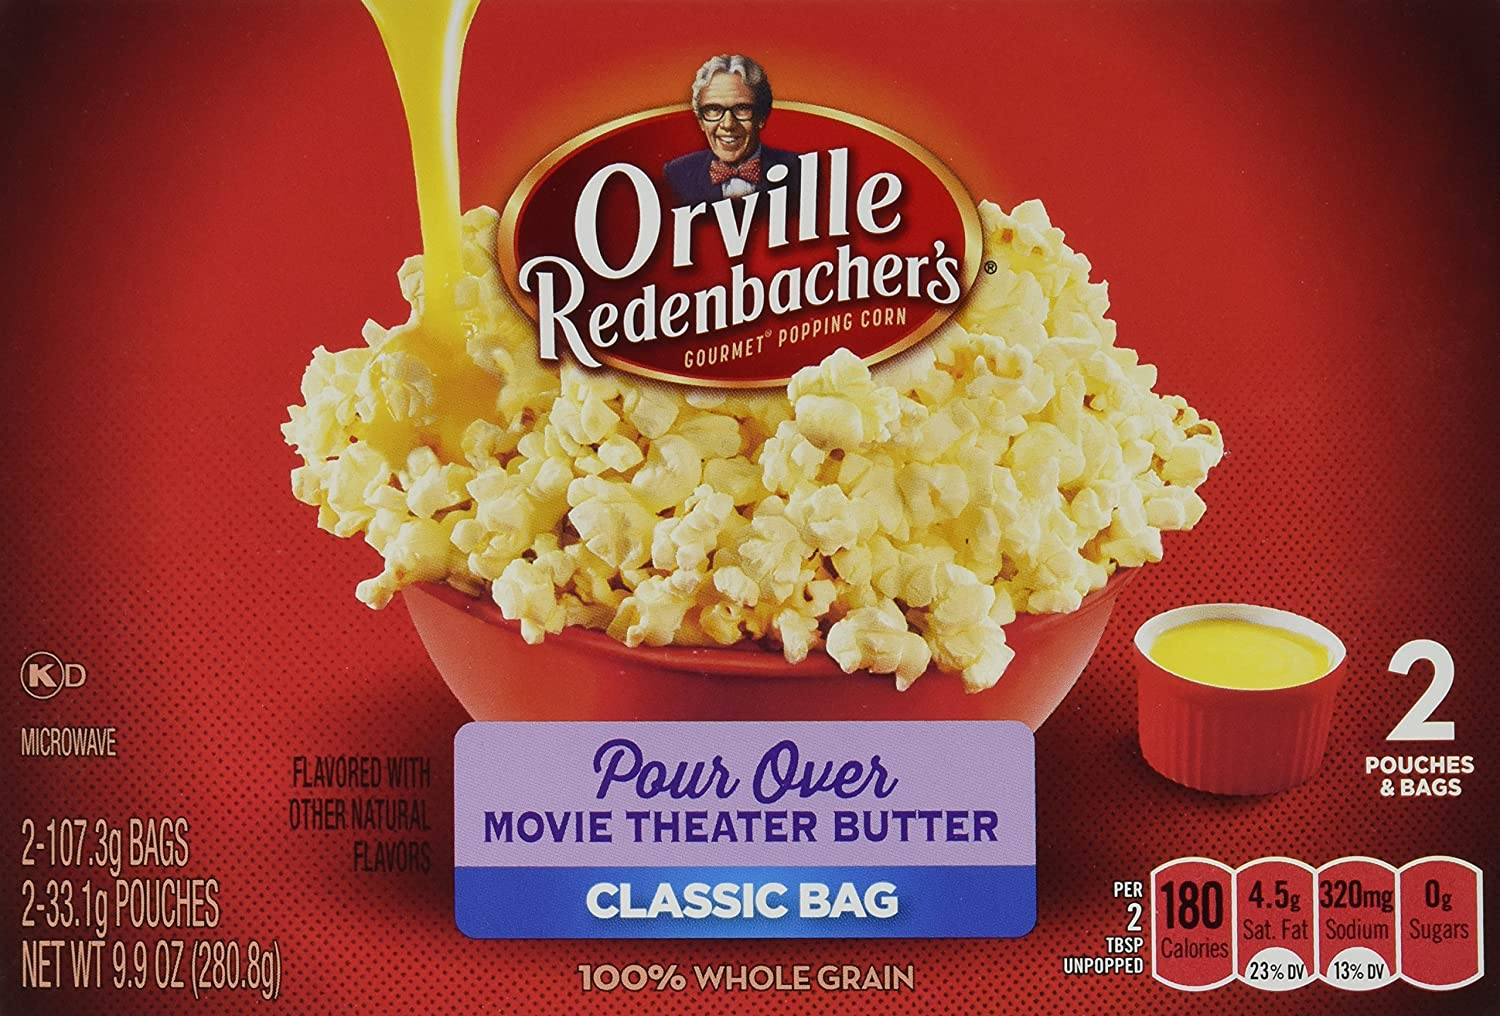 Orville Redenbacher's Gourmet Microwave Omaha Mall Pour-Over Special price for a limited time Popcorn Movi